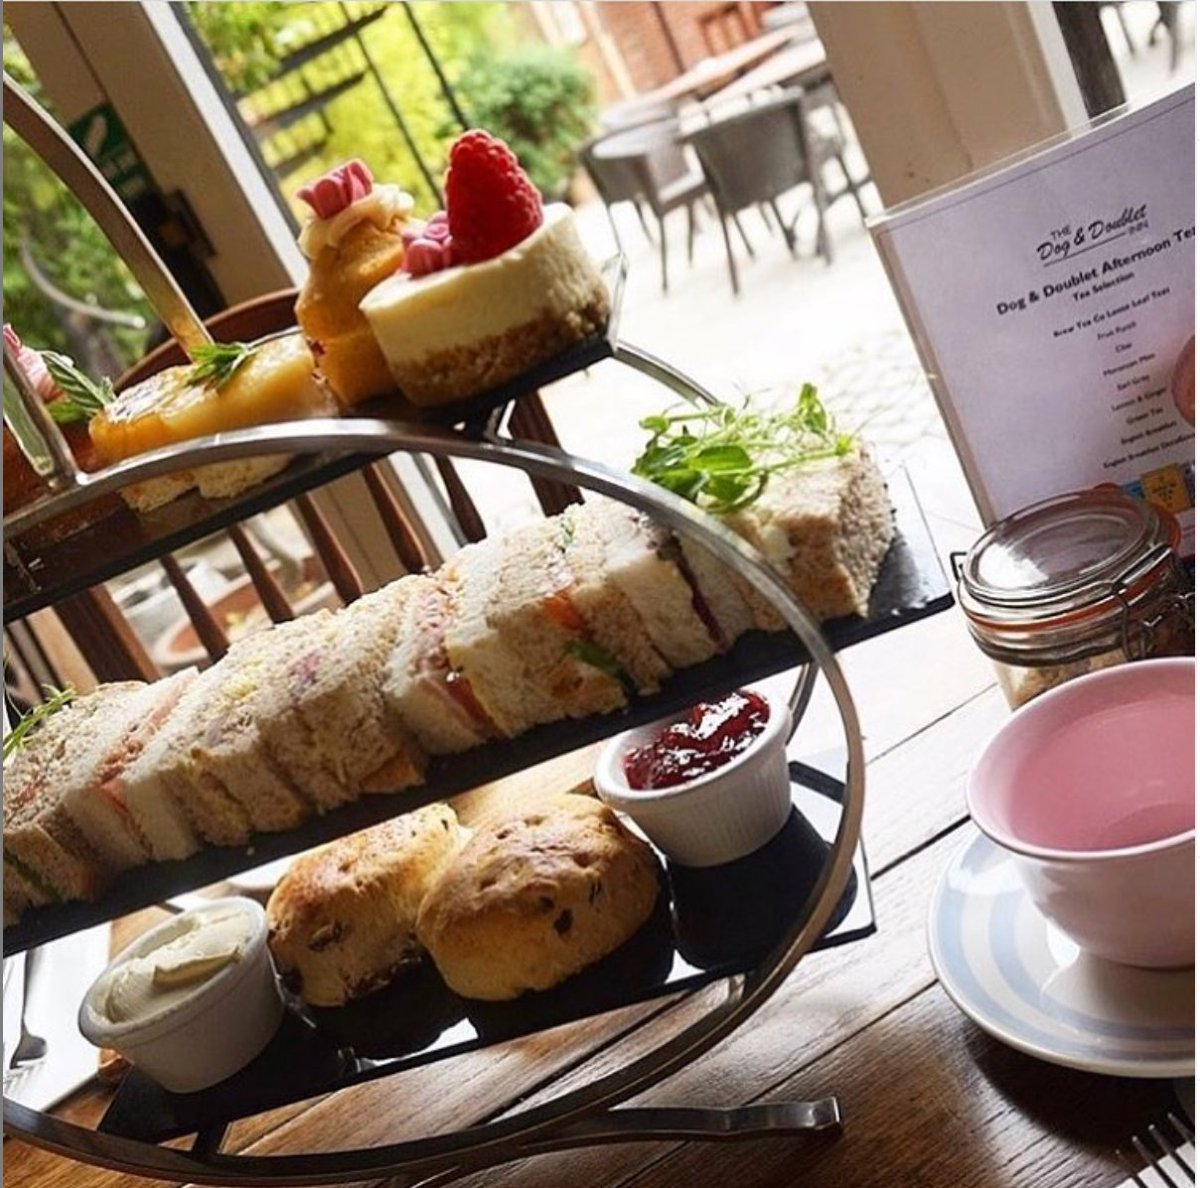 The perfect way to spend an afternoon!  We serve afternoon tea every Friday & Saturday between 3pm and 4pm. Enjoy a selection of sandwiches, homemade cake, scones & a choice of Brew Tea Co. loose leaf tea 🍰  For more info and to book 👉 https://t.co/eFJy3FJXLK  #stafford #wdyt https://t.co/GkwPvaQtDL